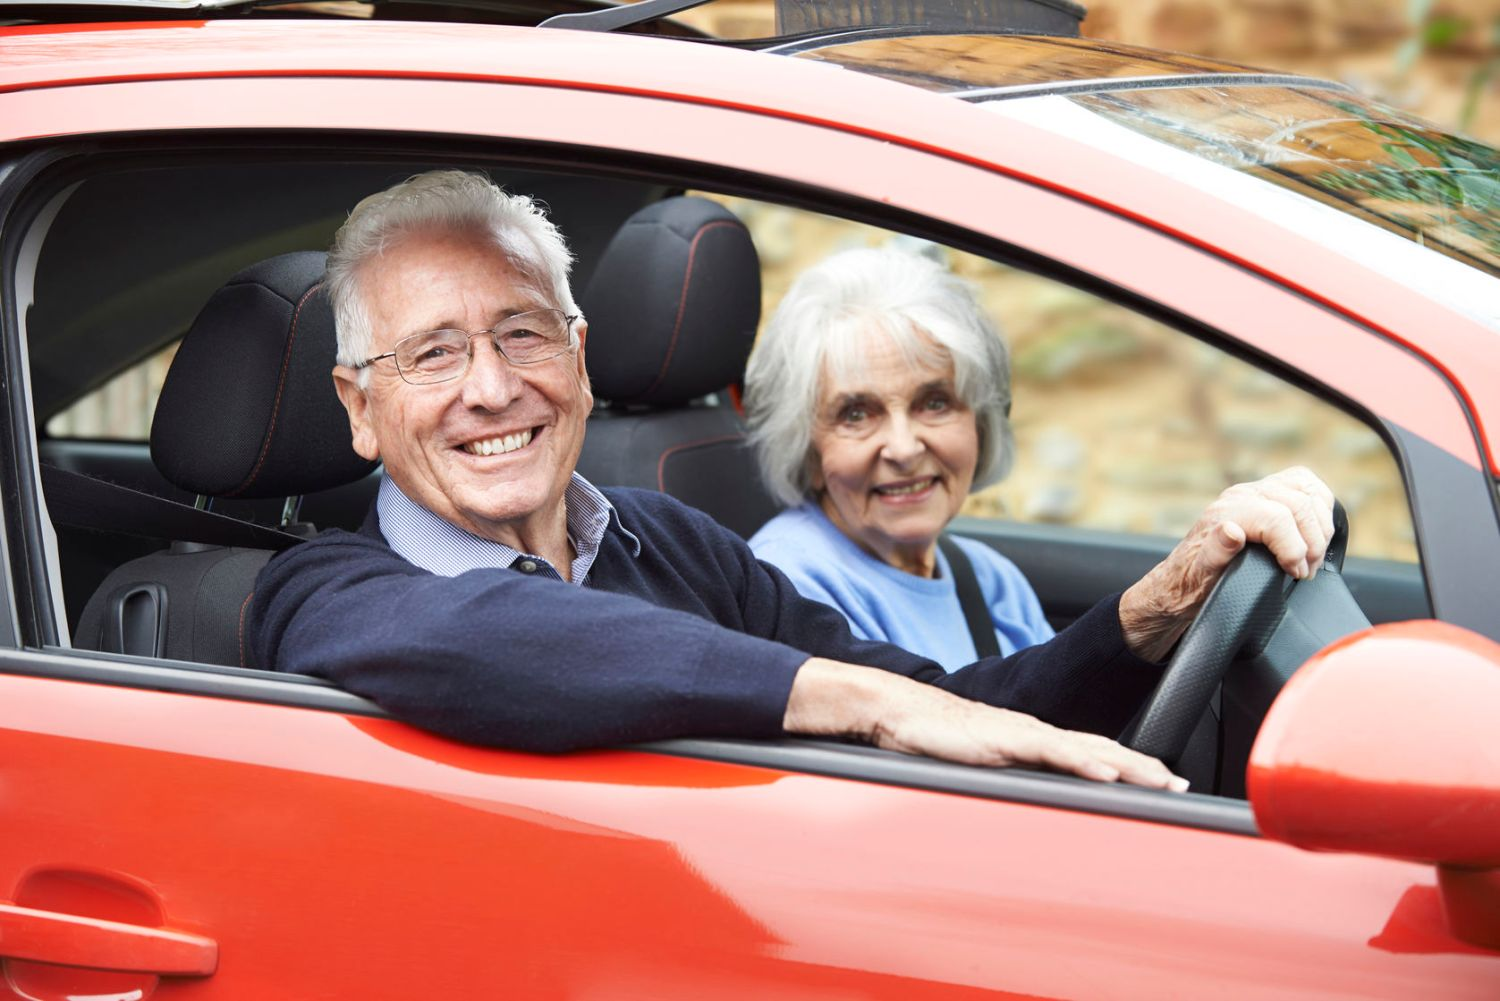 Elderly drivers off the road